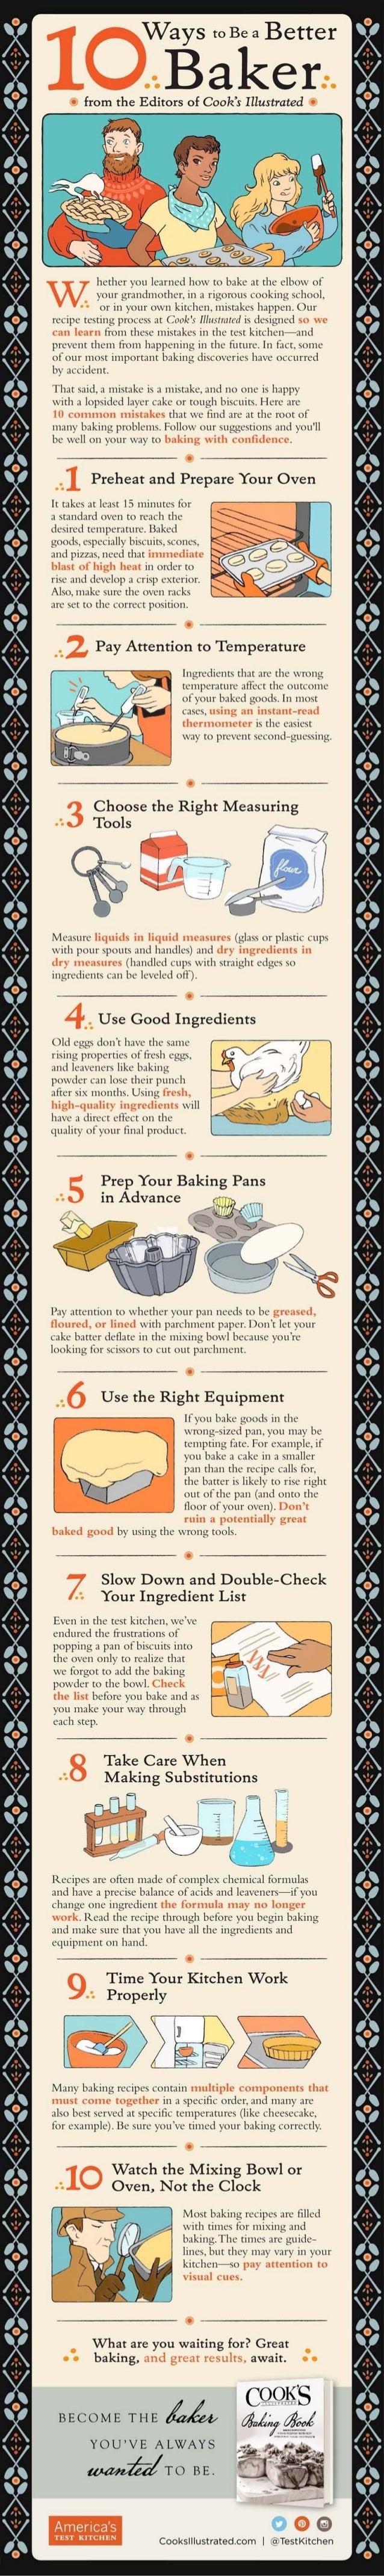 10 Ways to Be a Better Baker